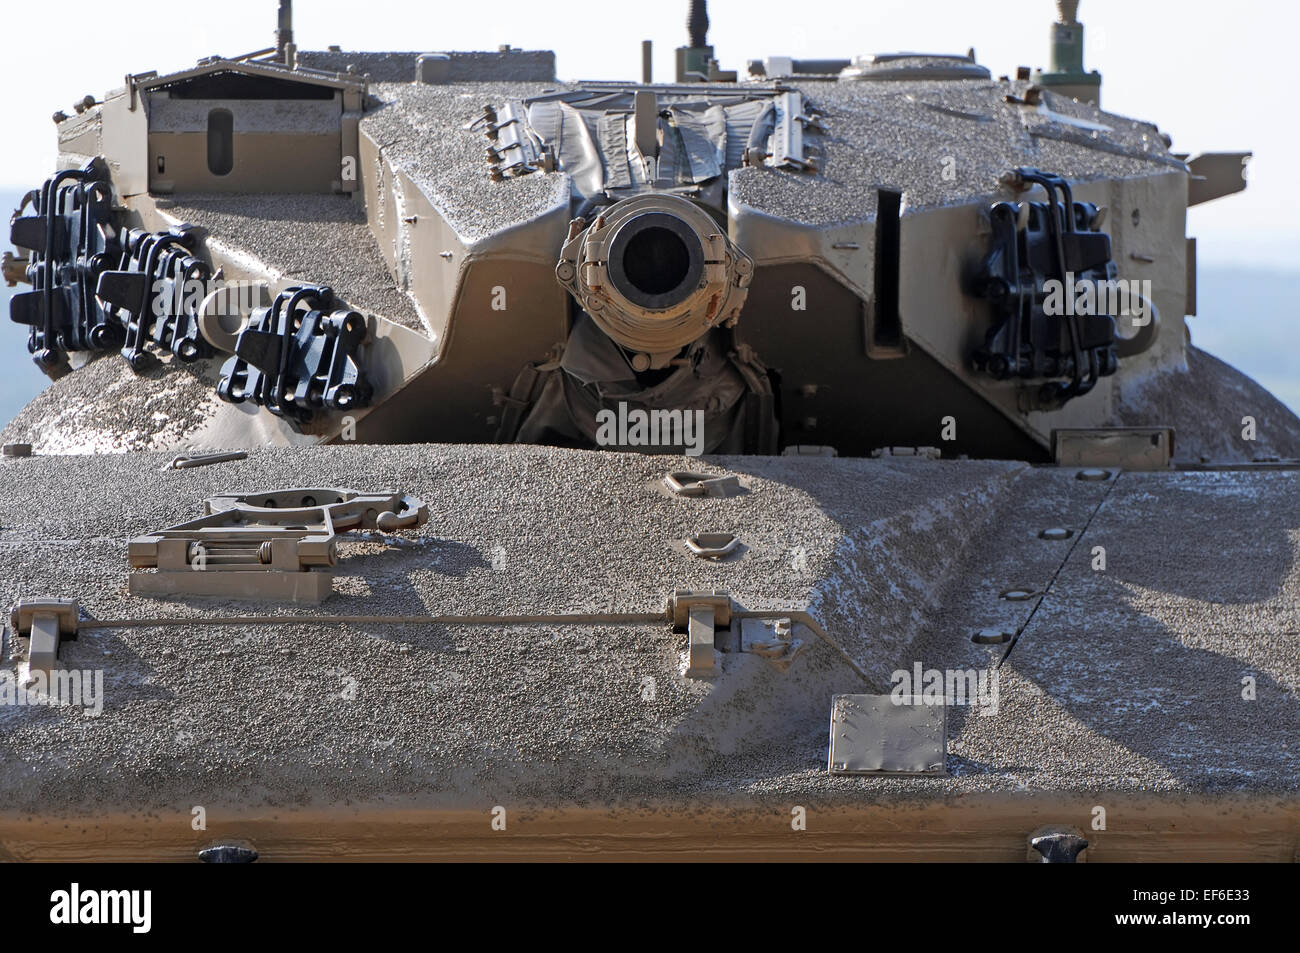 Tank, Military - Stock Image